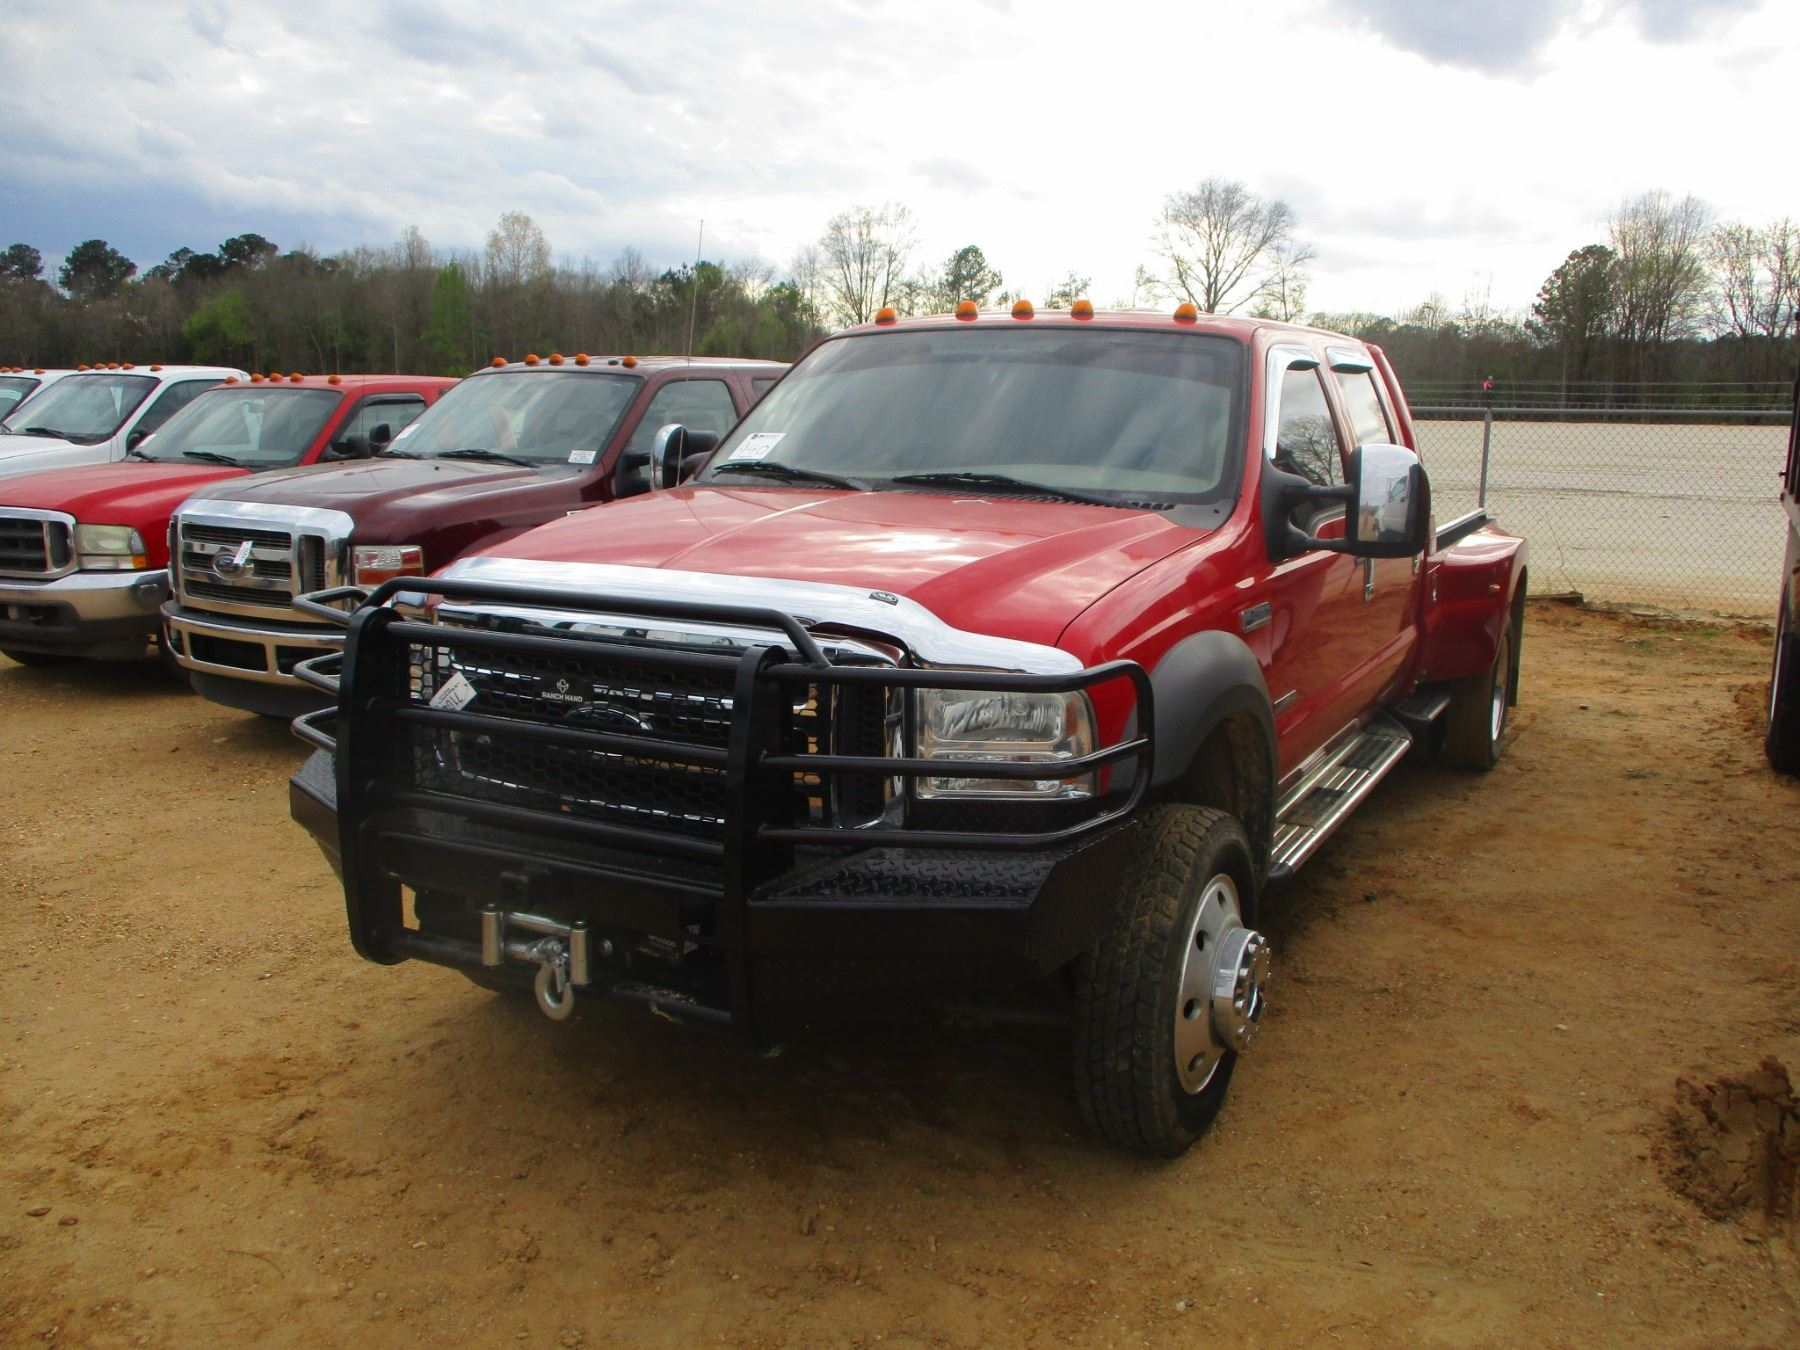 2005 Ford F450 Dually Flatbed Vin Sn 1fdxw47p45ea87902 Powerstroke Diesel Engine A T Crew Cab